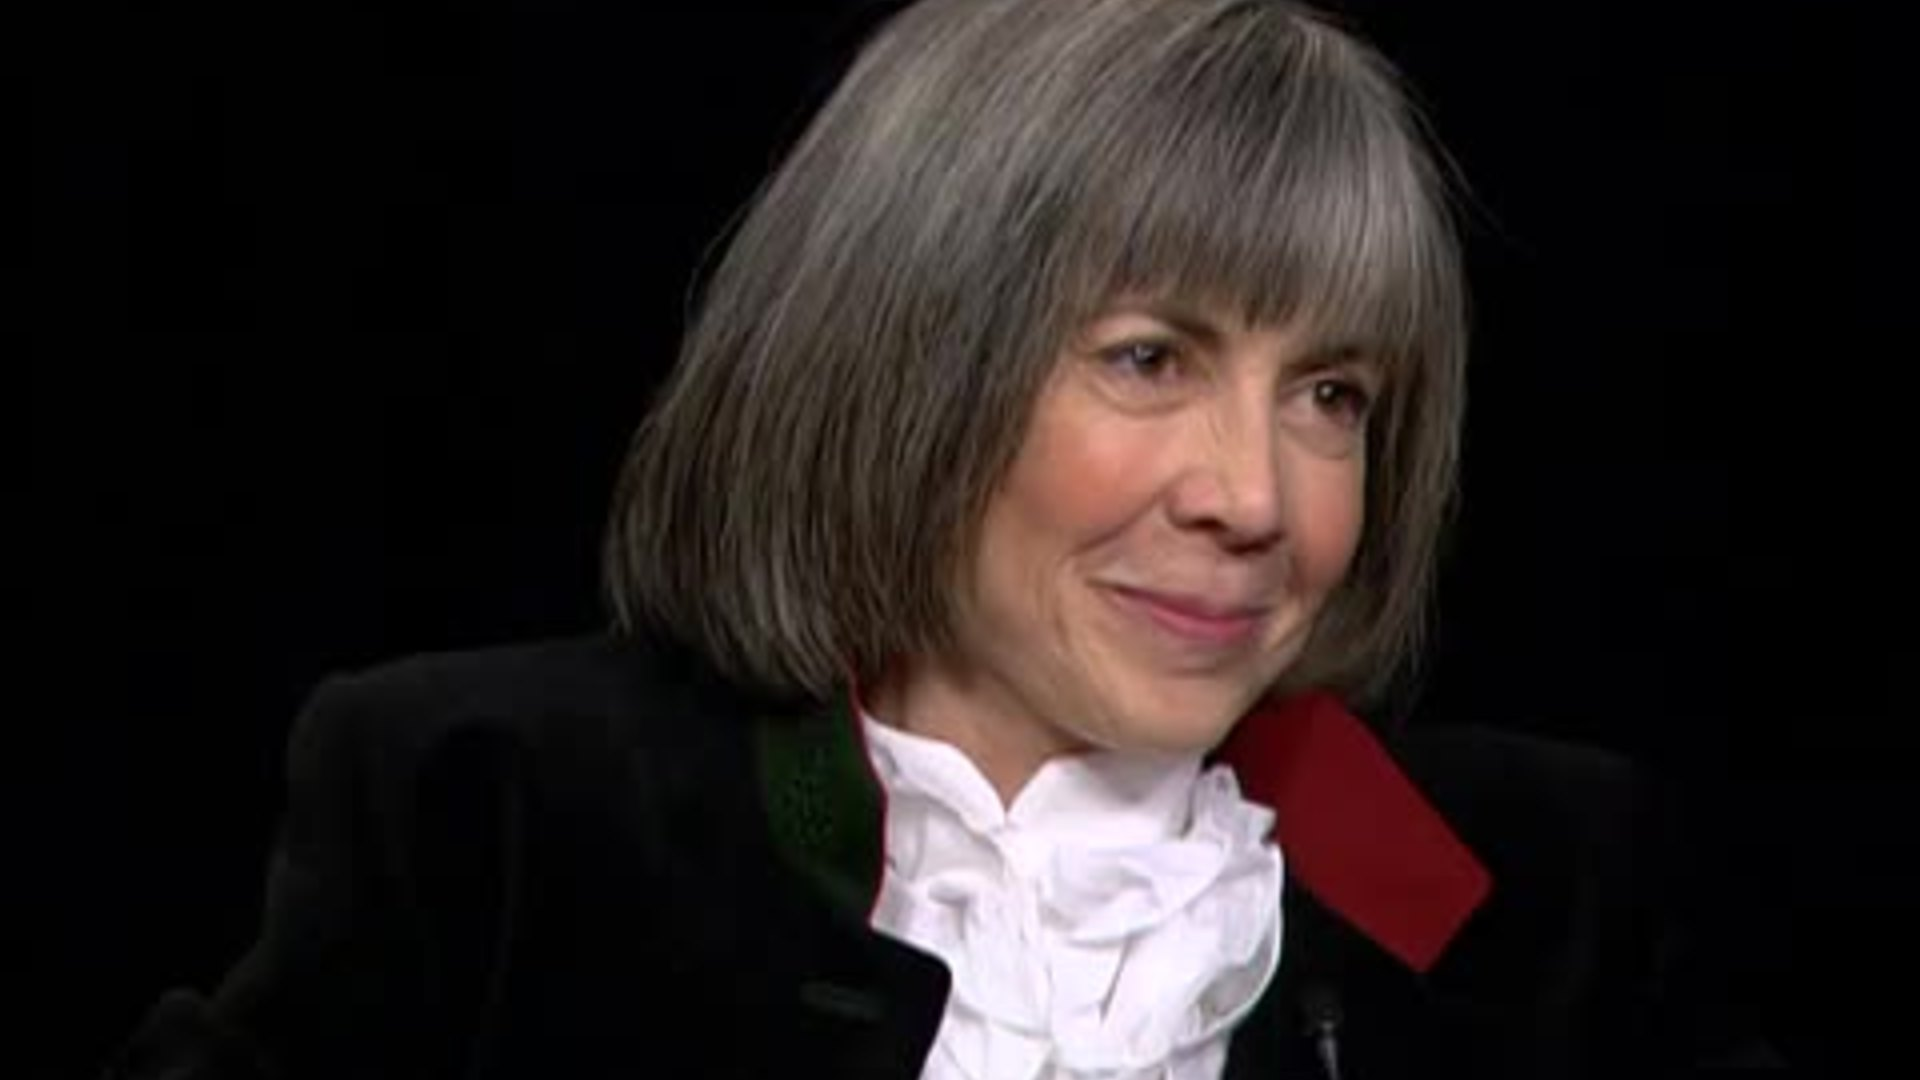 anne rice thesis Discover anne rice quotes, early years, writing career, return to roman catholicism, personal quotes, amazoncom reviews, facebook, adaptations, bibliographyand moreunwrap a complete list of books by anne rice and find books available for swap.